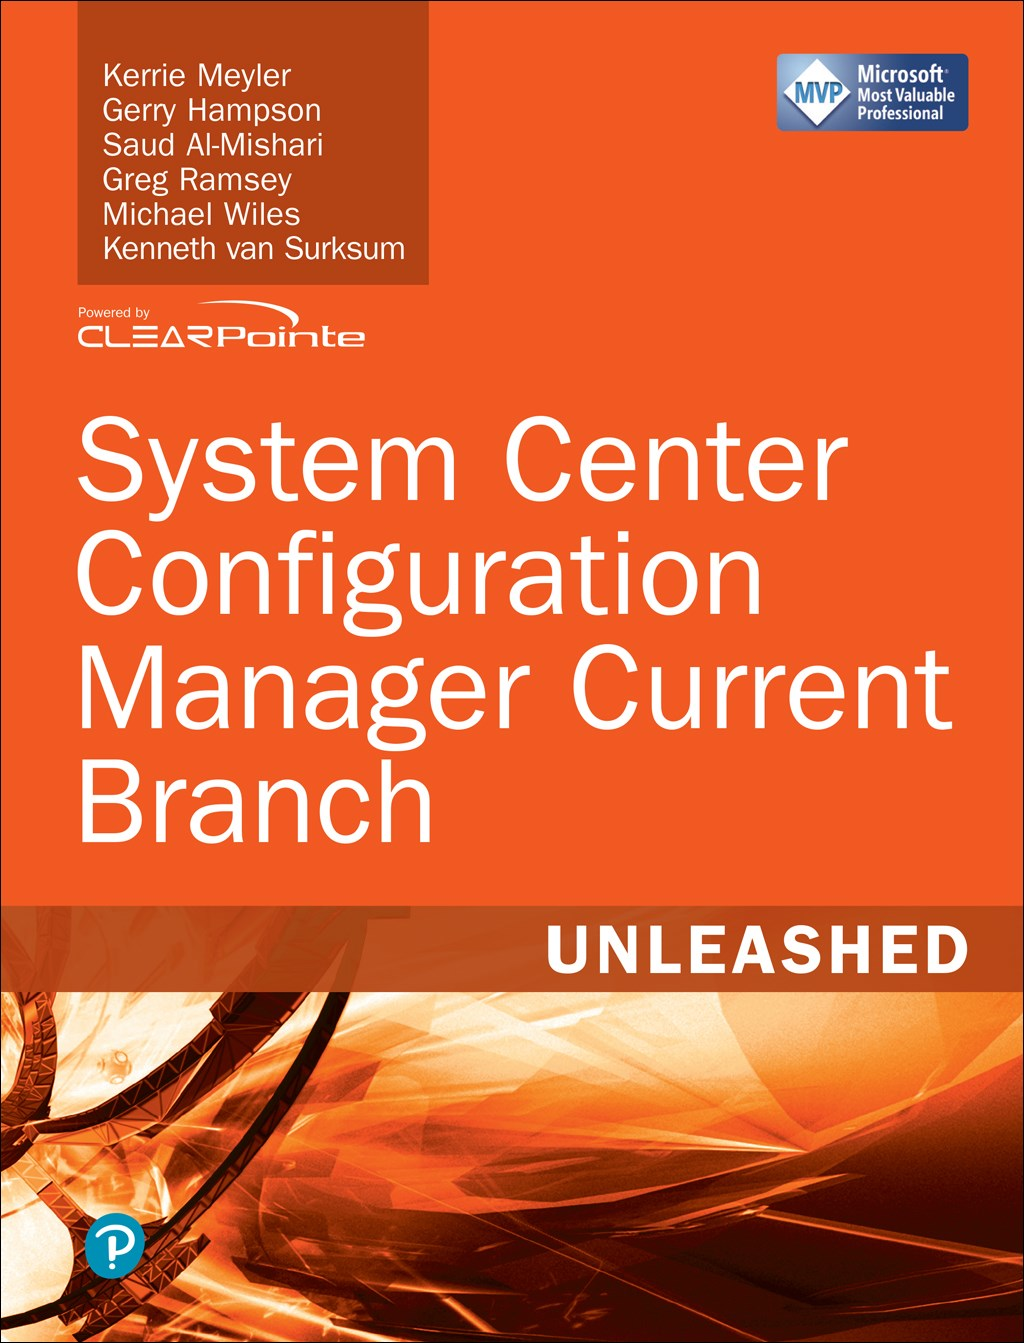 System Center Configuration Manager Current Branch Unleashed